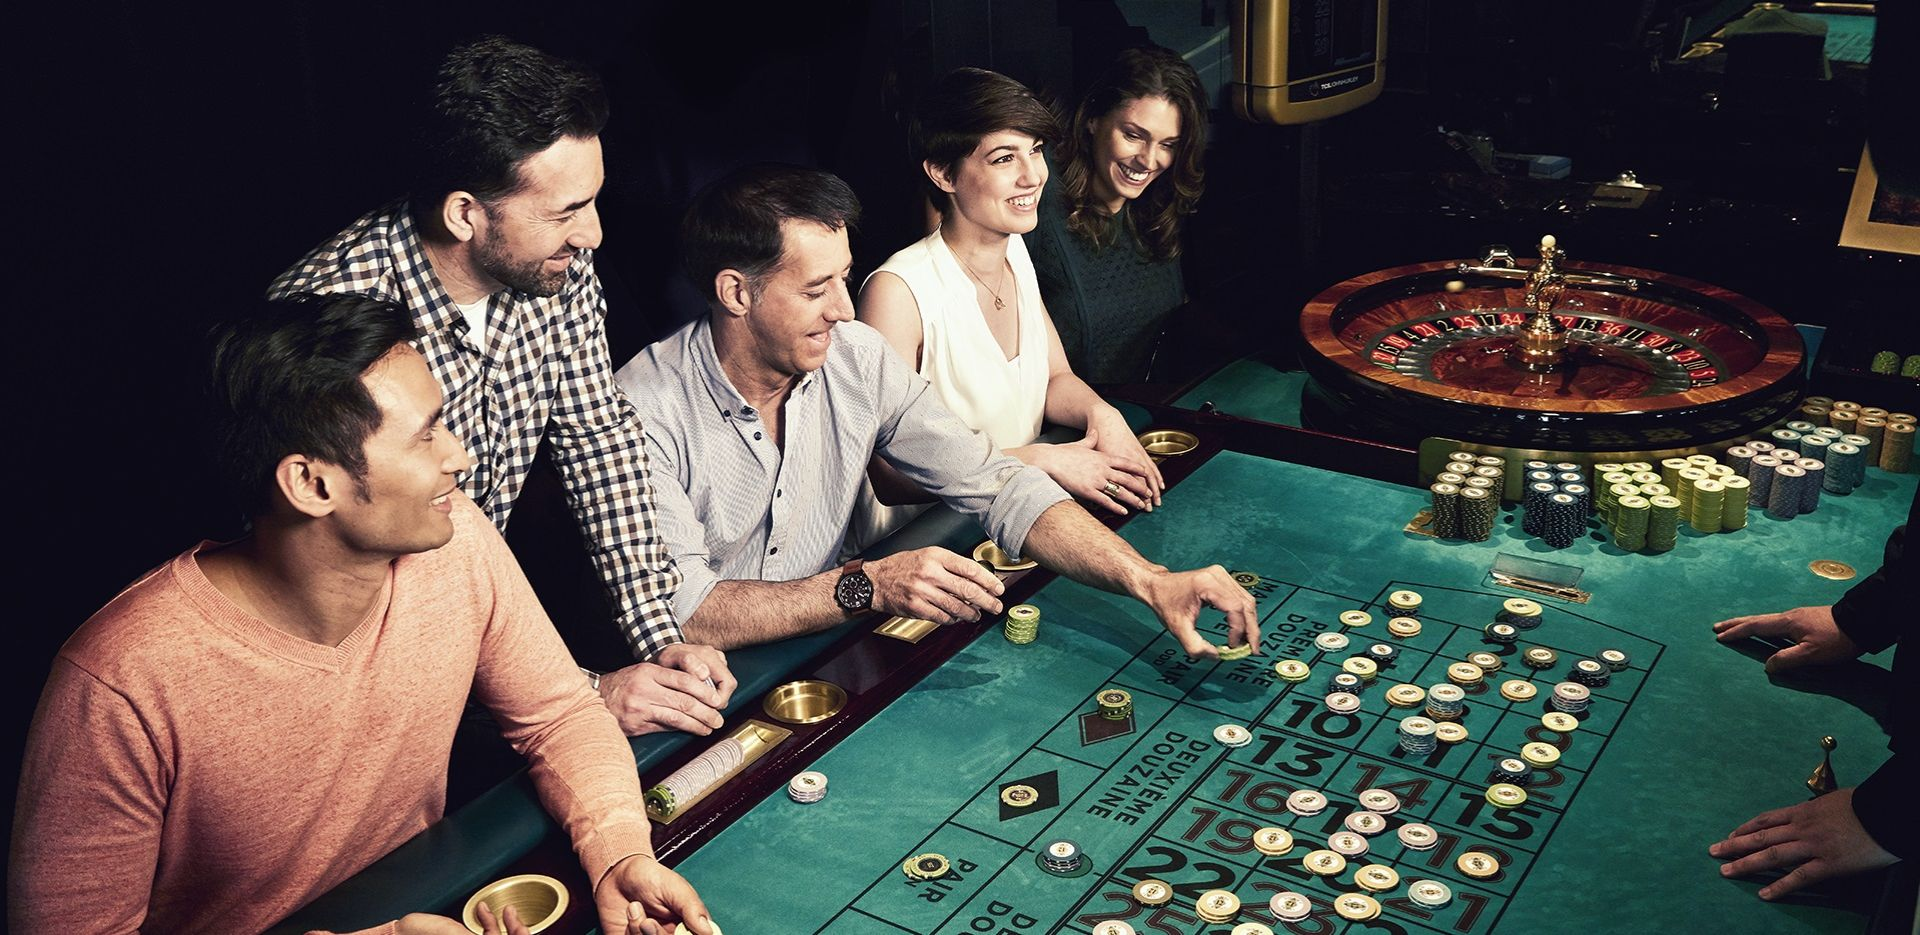 a group of people playing roulette